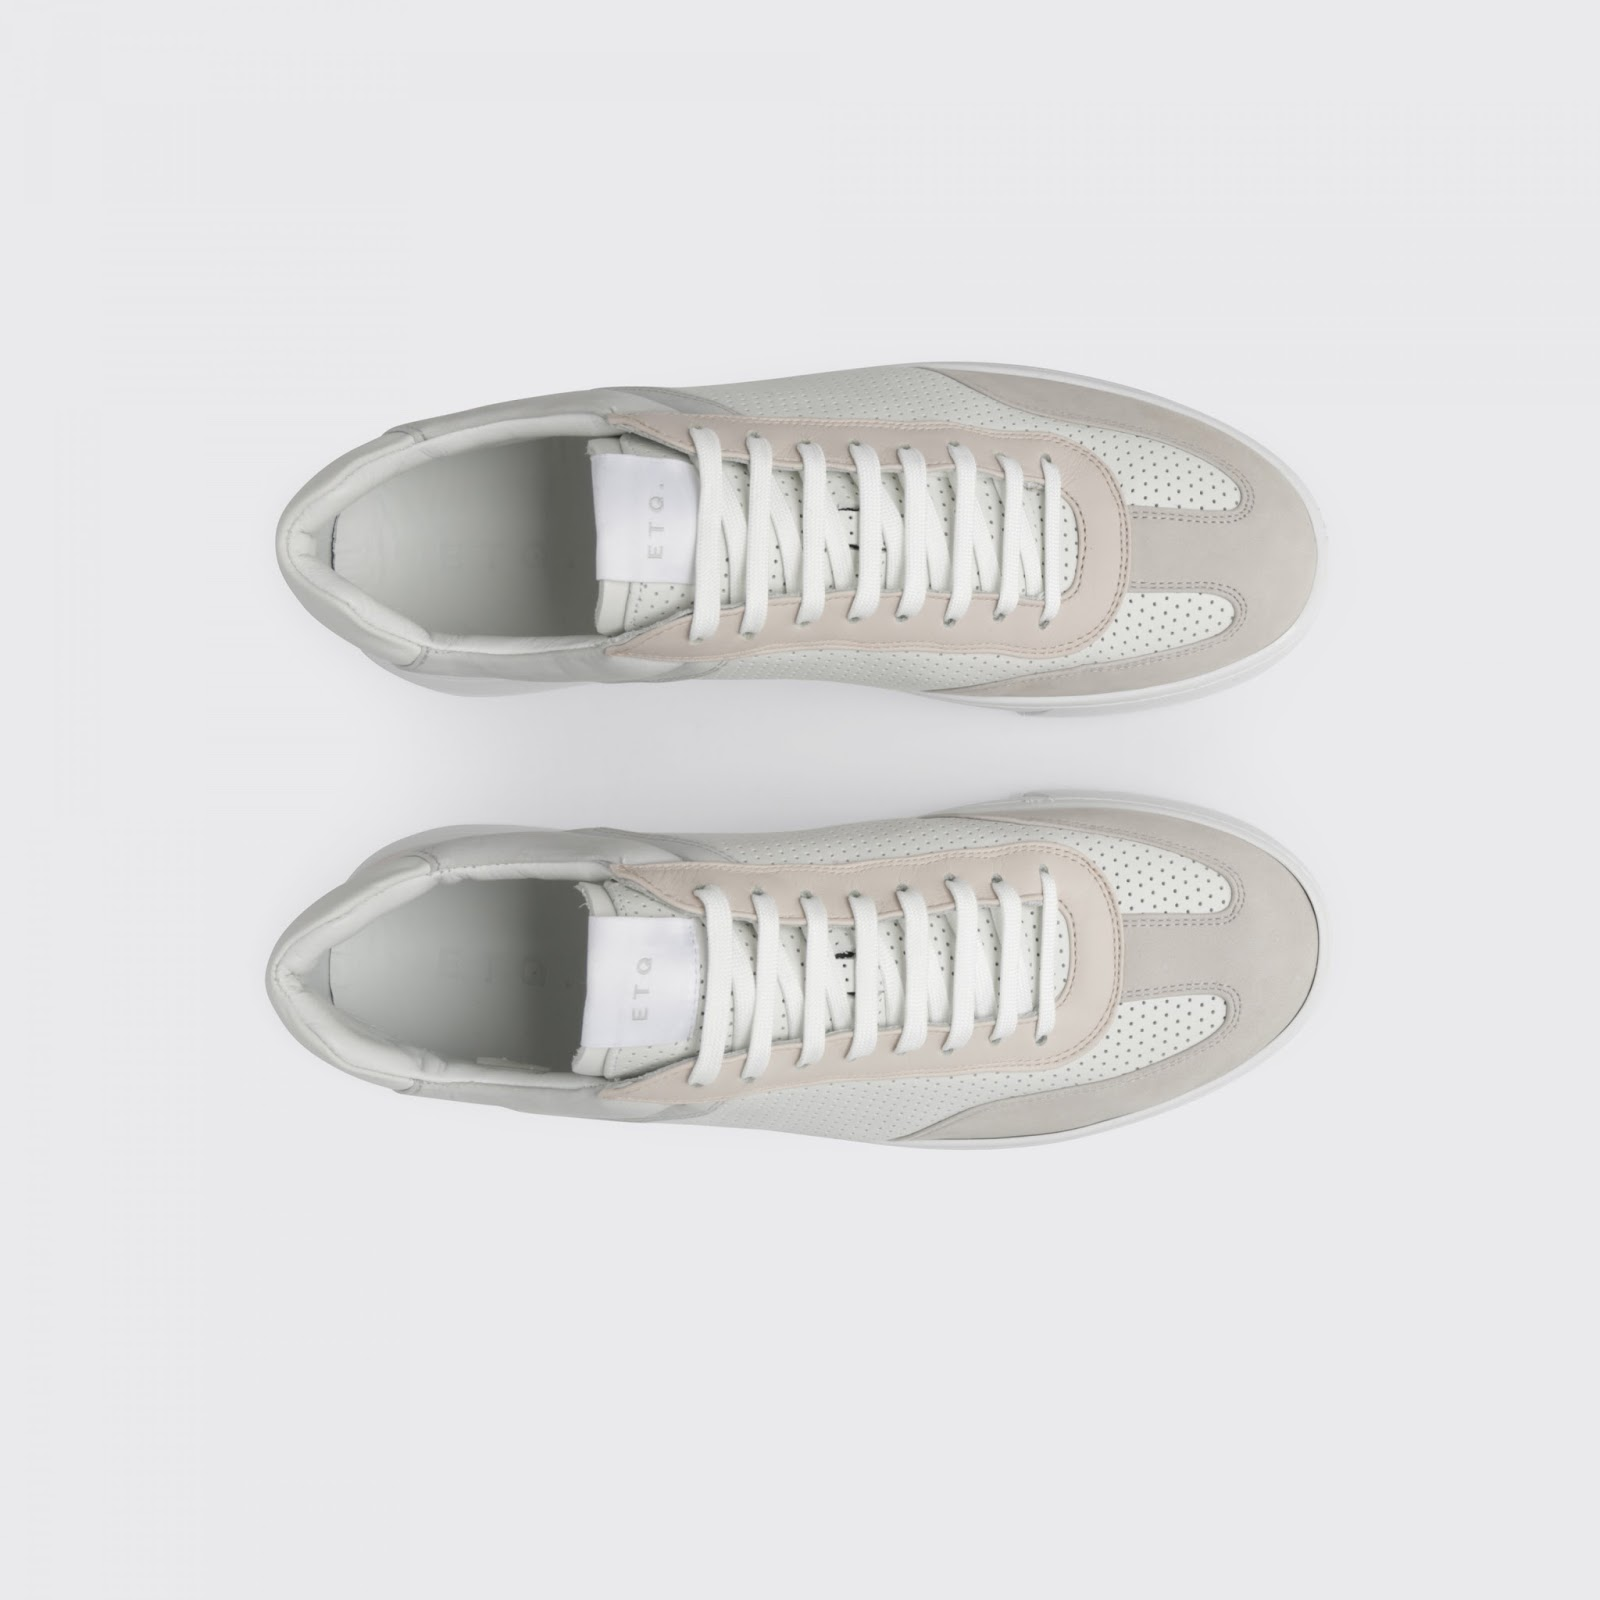 331370d4f10 Perfectly Paled: ETQ Amsterdam Low 5 Pale Pink Sneaker | SHOEOGRAPHY